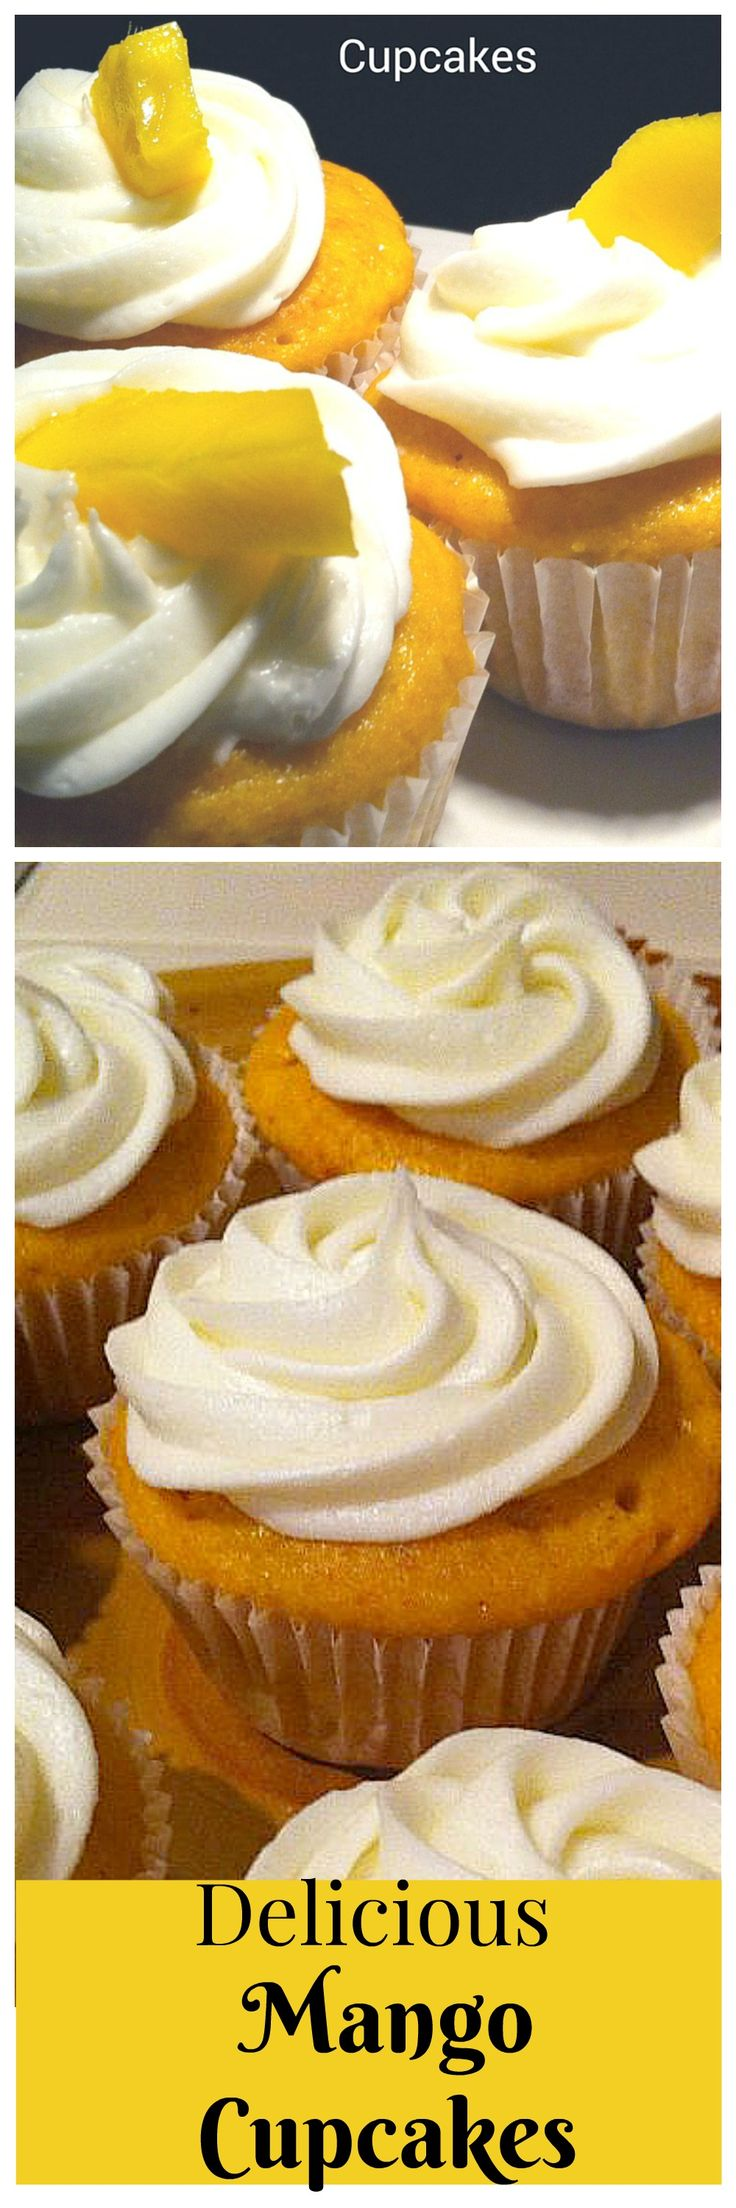 Simple mango cupcakes recipe - Made with fresh mango and a boxed cake mix - a perfect summer dessert!